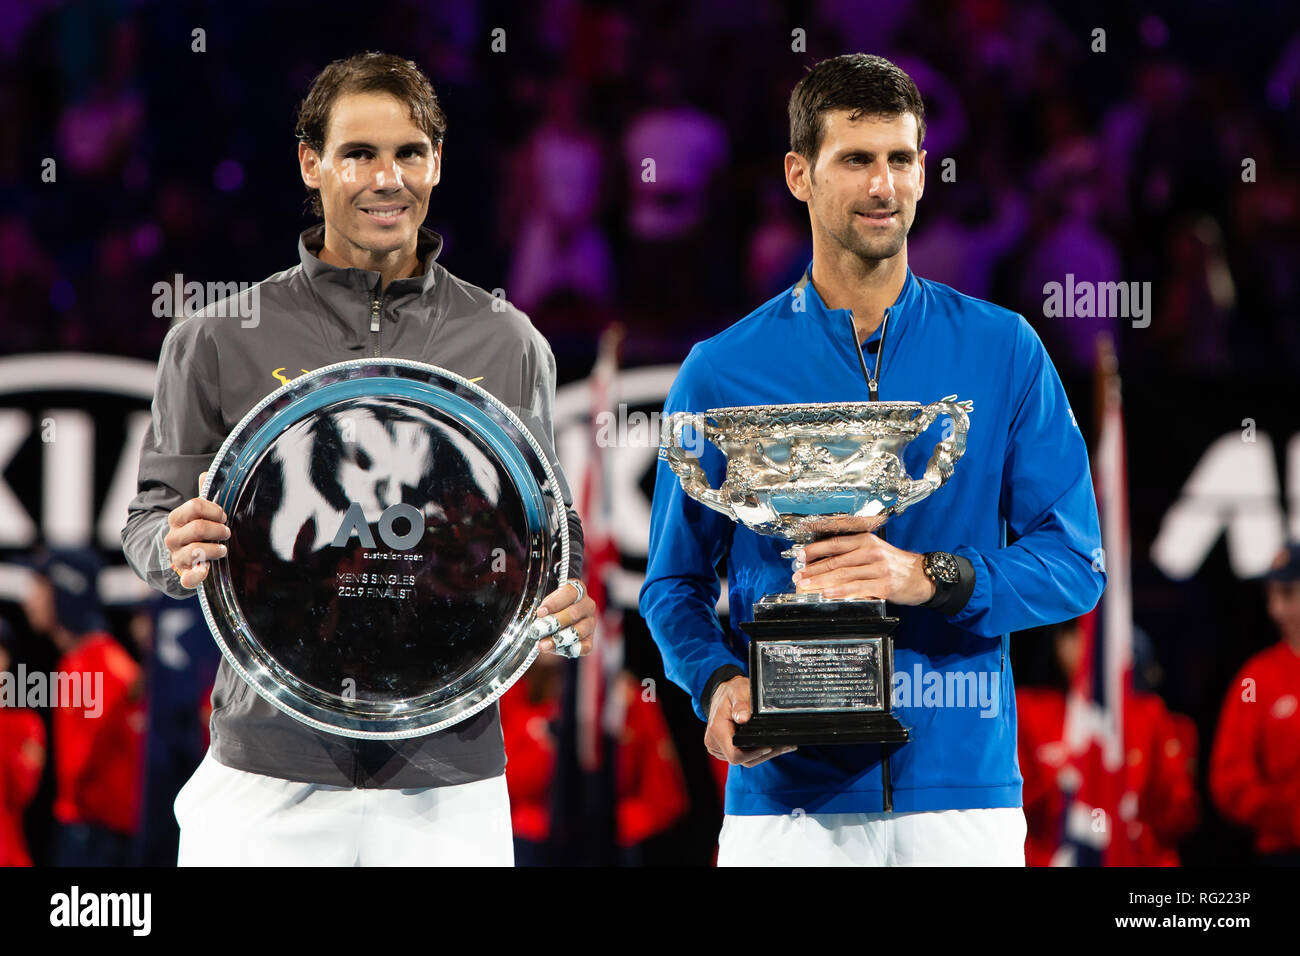 Melbourne, Australia. 27th Jan, 2019. Novak Djokovic from Serbia won his 7th Australian Open title in the final against Rafael Nadal from Spain at the 2019 Grand Slam tennis tournament in Melbourne, Australia. Frank Molter/Alamy Live news - Stock Image